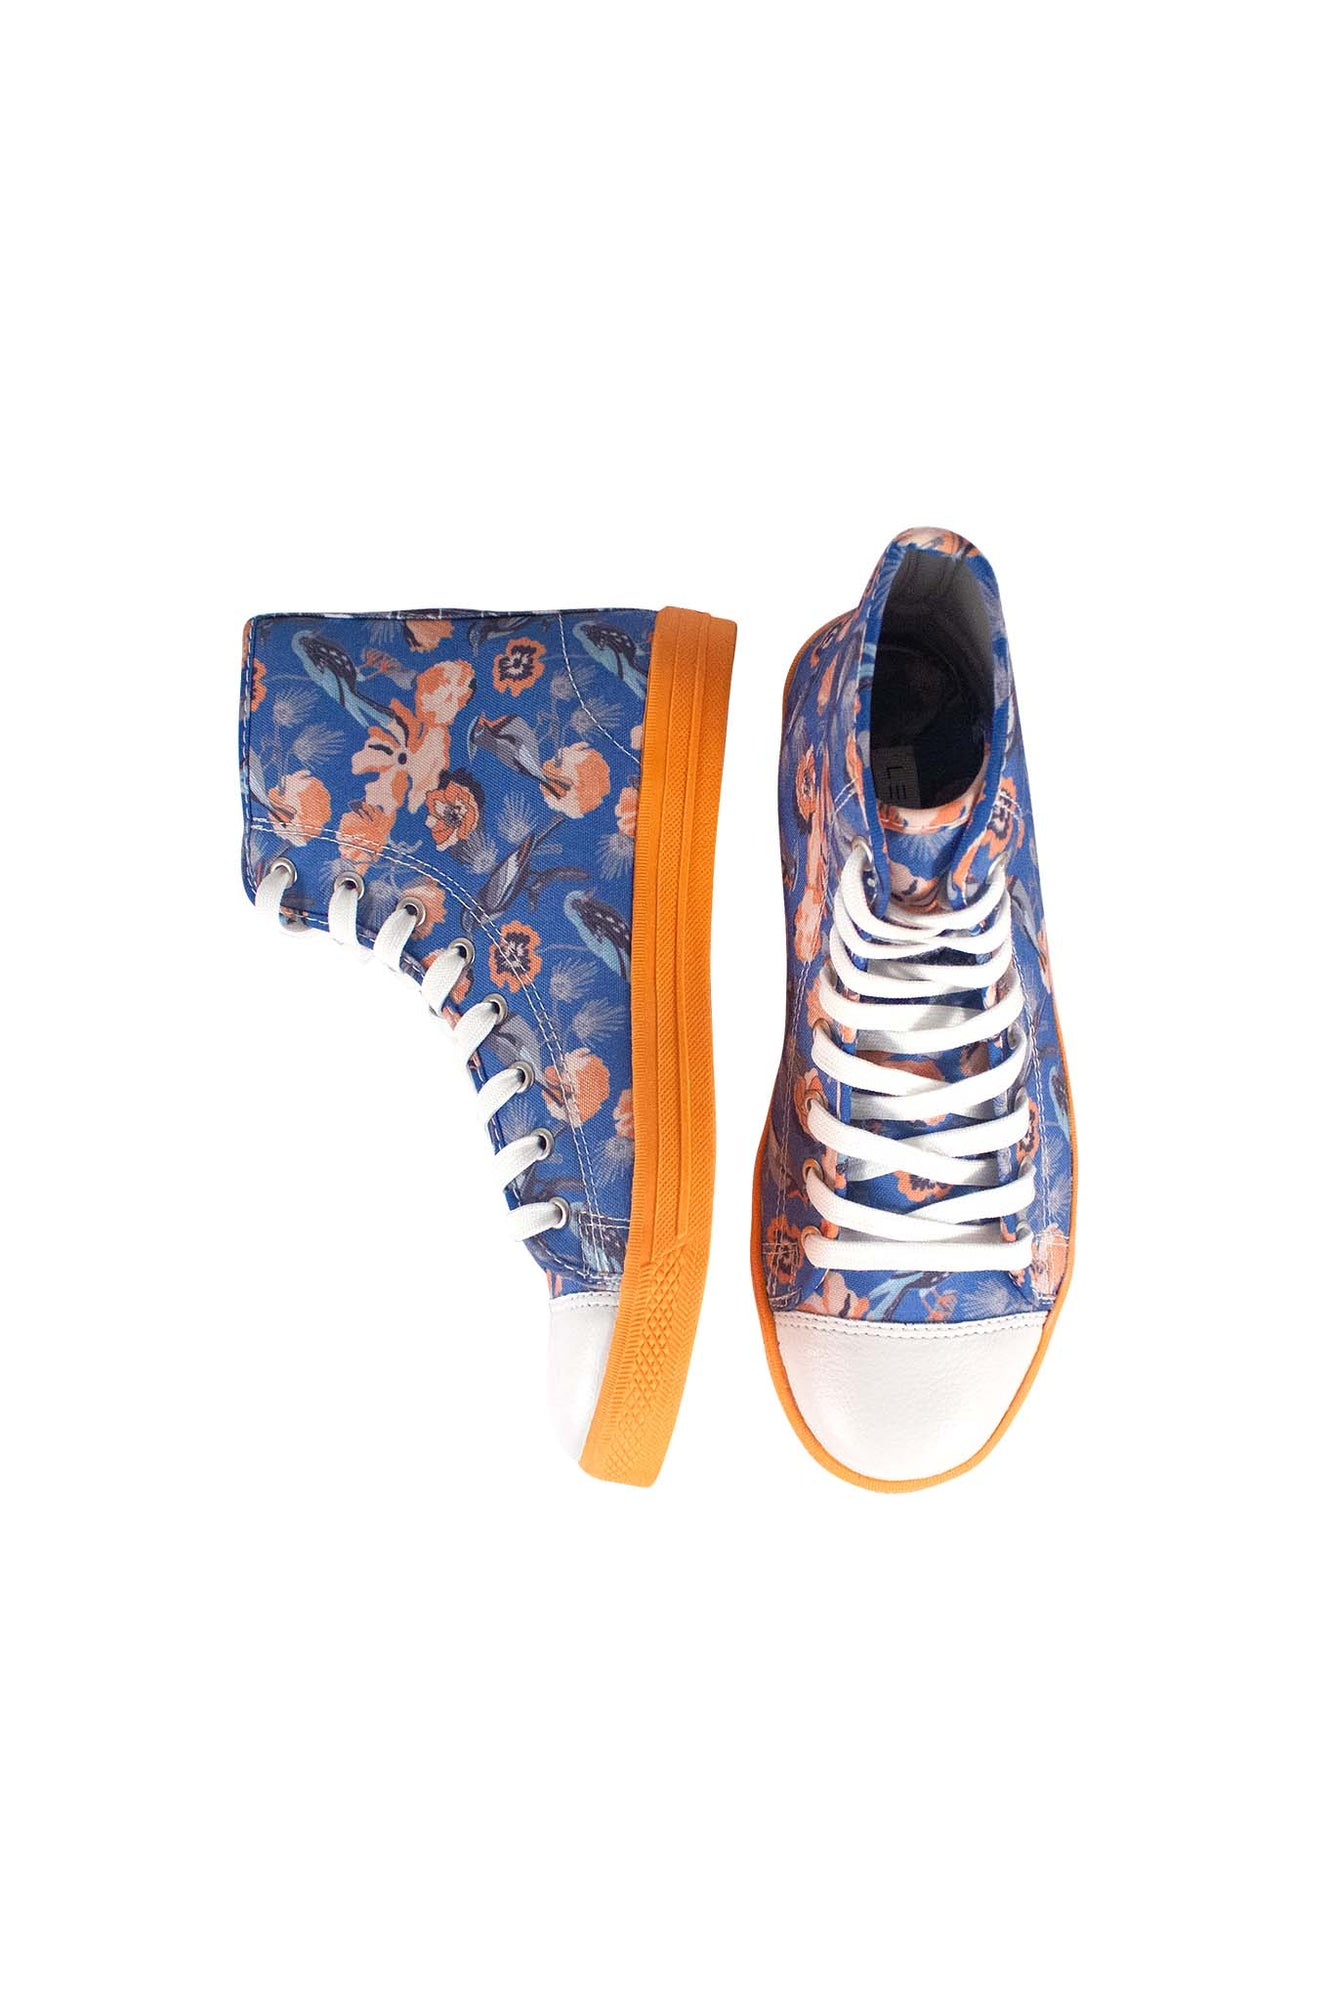 KEYES Hightop Sneakers Blue Bird Print